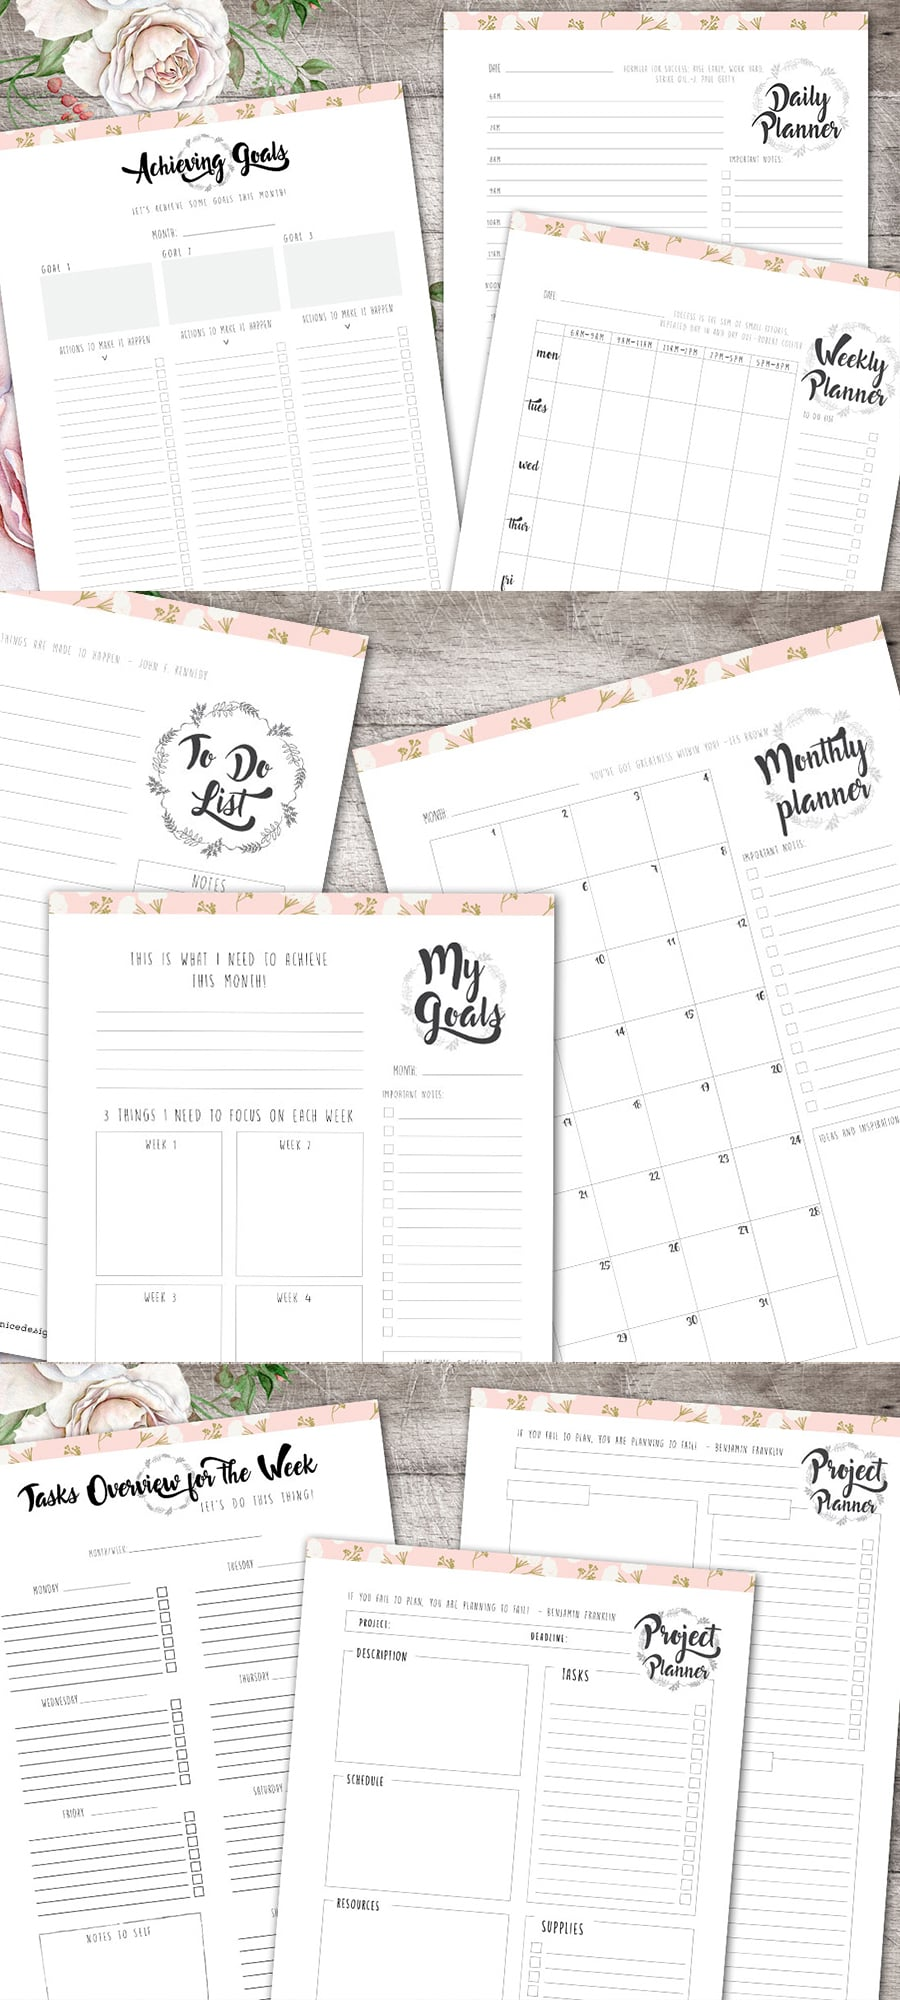 Life Planner: Make 2018 Your Best Year Yet Collection - Full preview 900x2000px 2